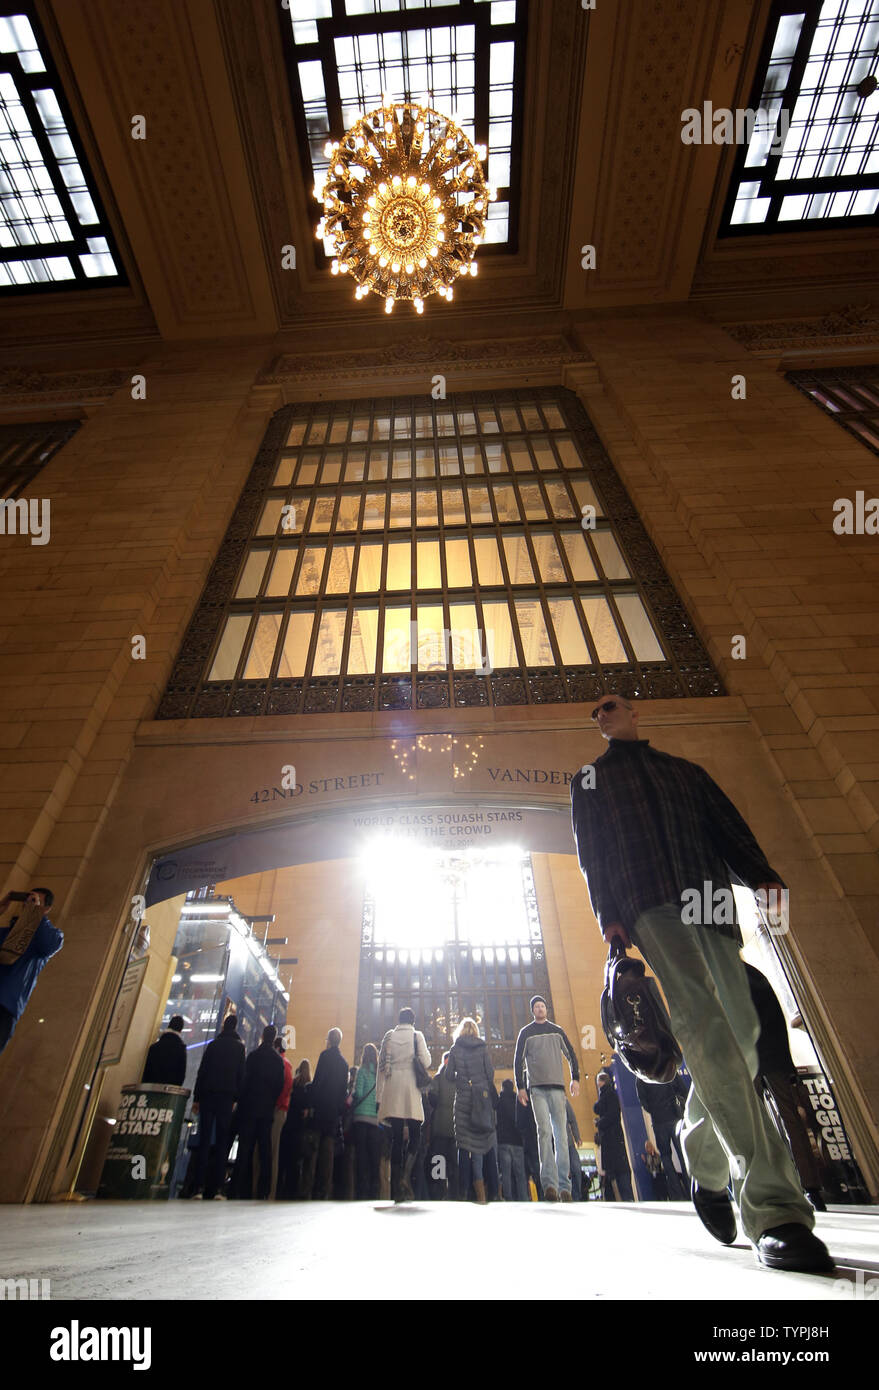 People exit and enter Vanderbilt Hall at JPMorgan Chase & Co.'s 18th annual  'Tournament of Champions' Professional Squash Tournament in Grand Central Terminal in New York City on January 16, 2015. The annual tournament is scheduled to continue through January 23rd.      Photo by John Angelillo/UPI - Stock Image